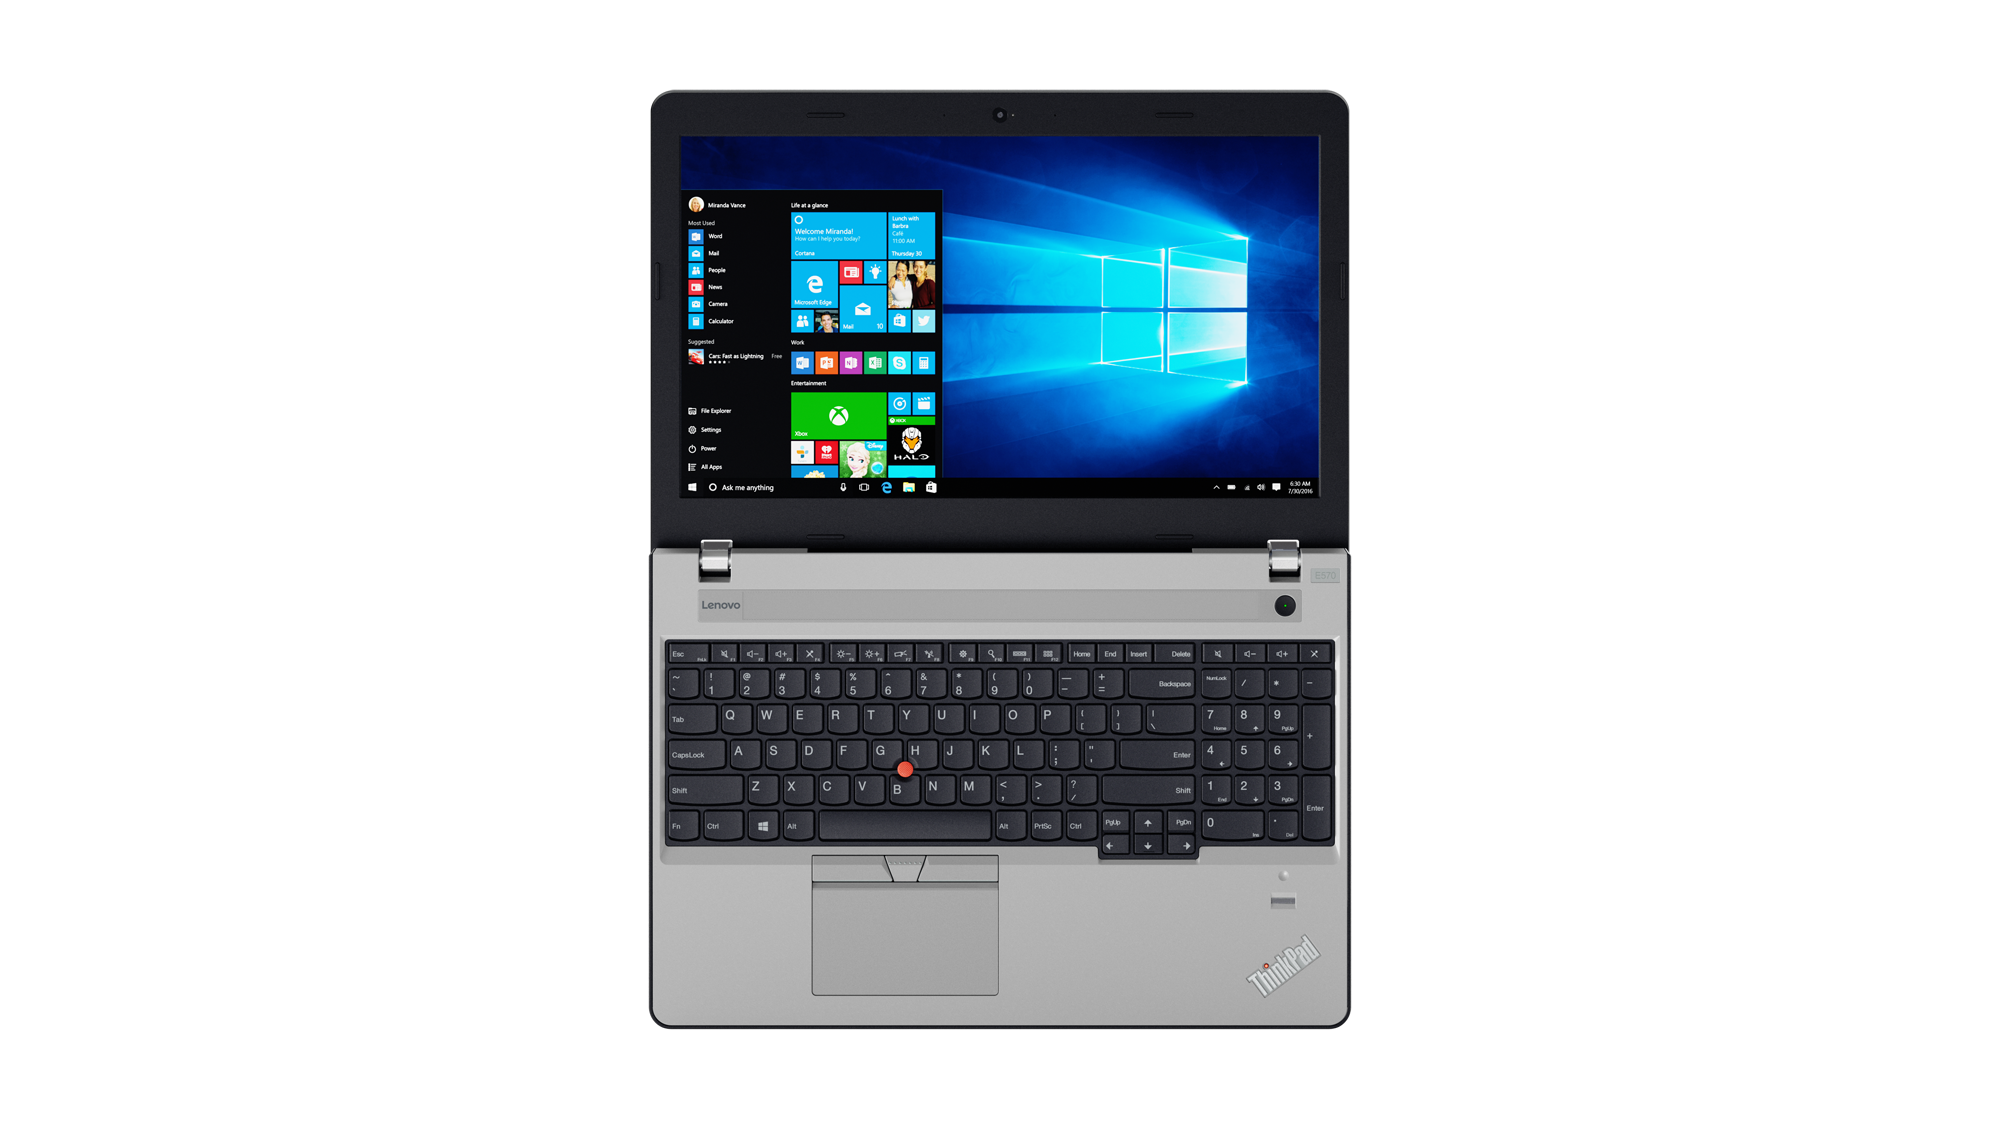 catalog/Banners/11_Thinkpad_E570_15inch_Tour_Birdseye_B_C_cover_Win_10_screen-fill_Guinness_Silver.png